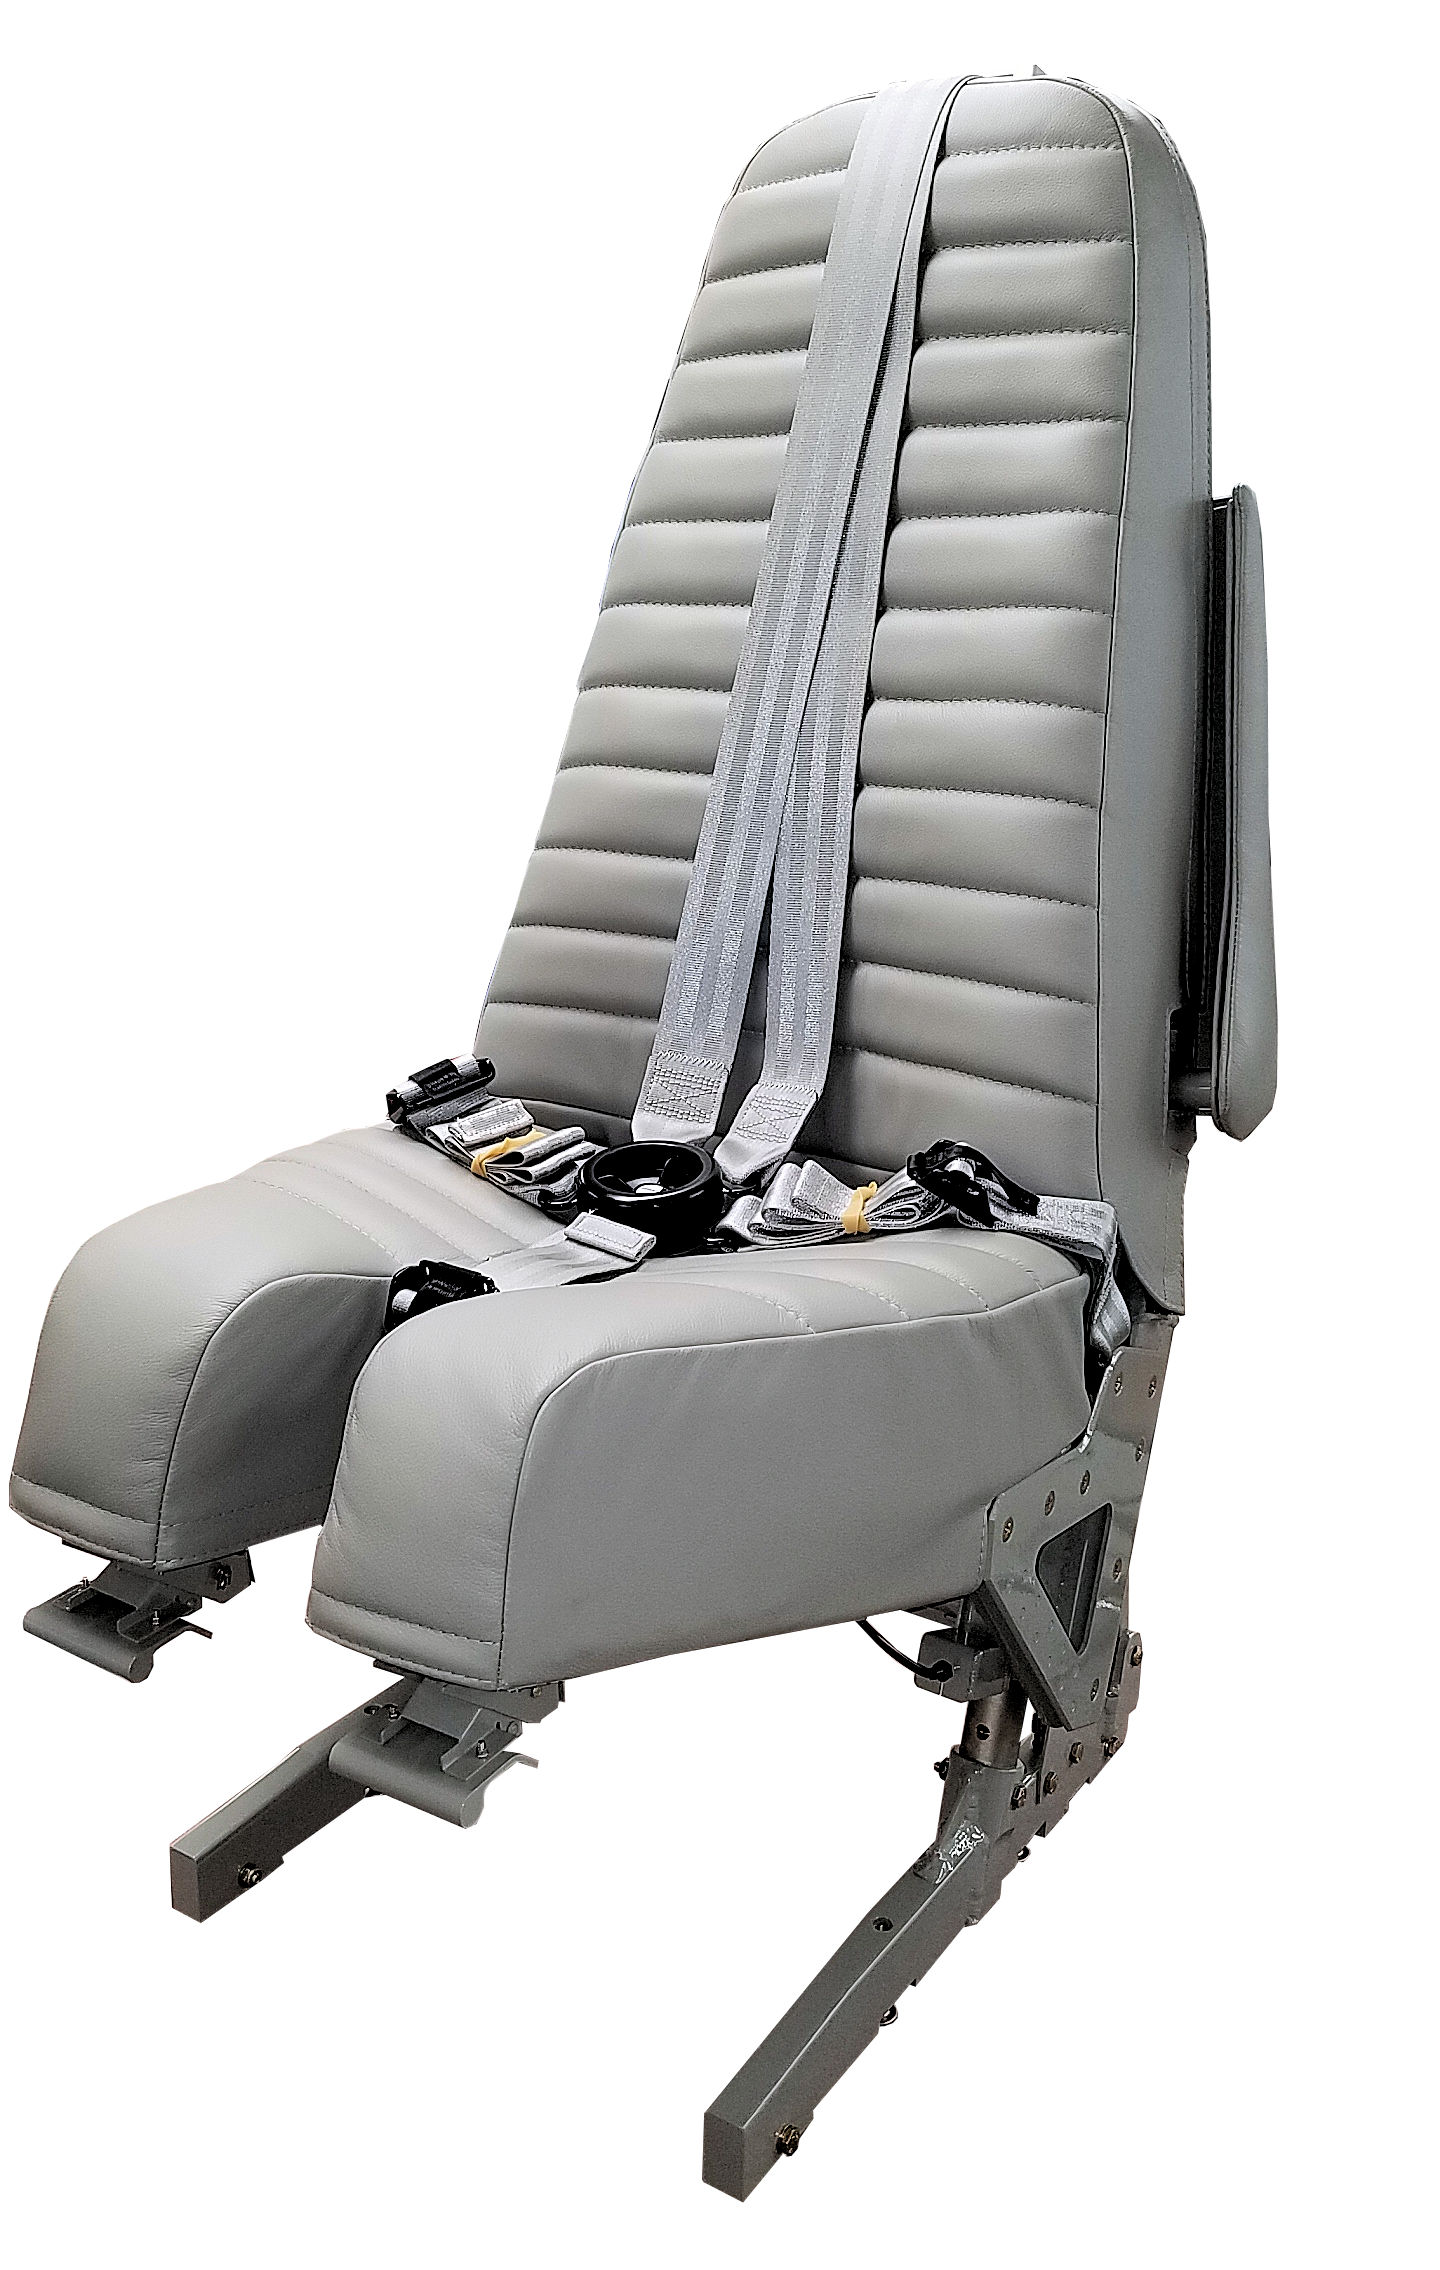 Top Access ISR (Intelligence-Surveillance-Reconnaissance) Special Missions Operator Seat